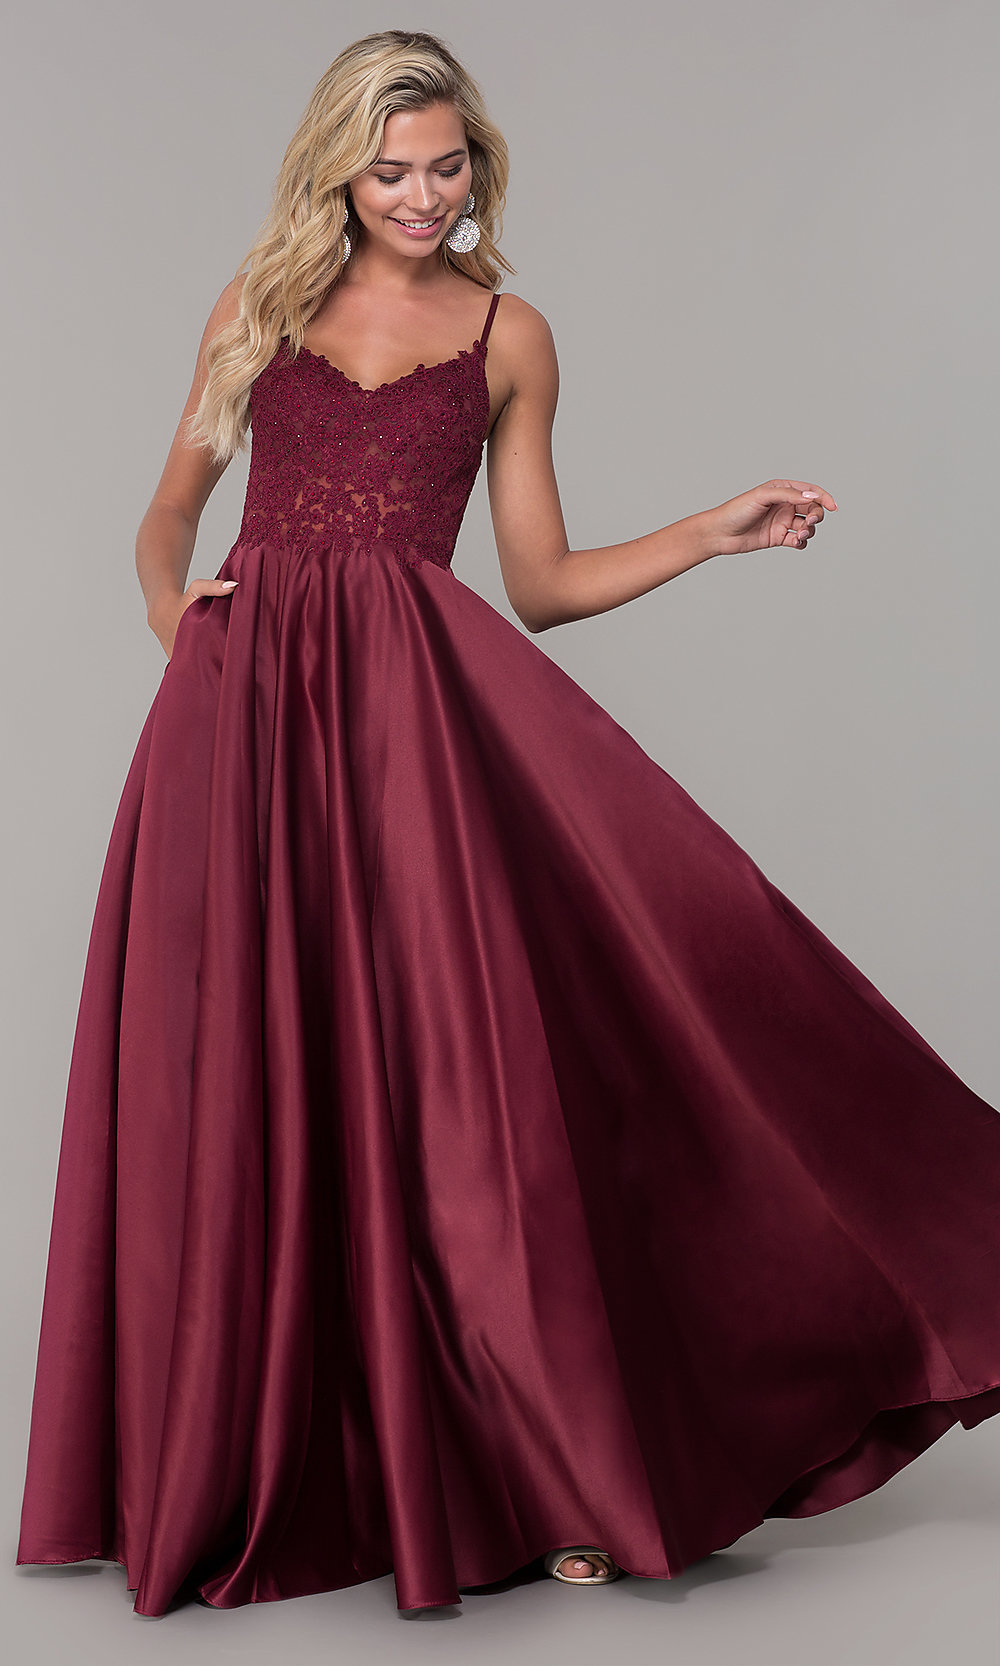 What stores have the best prom dresses